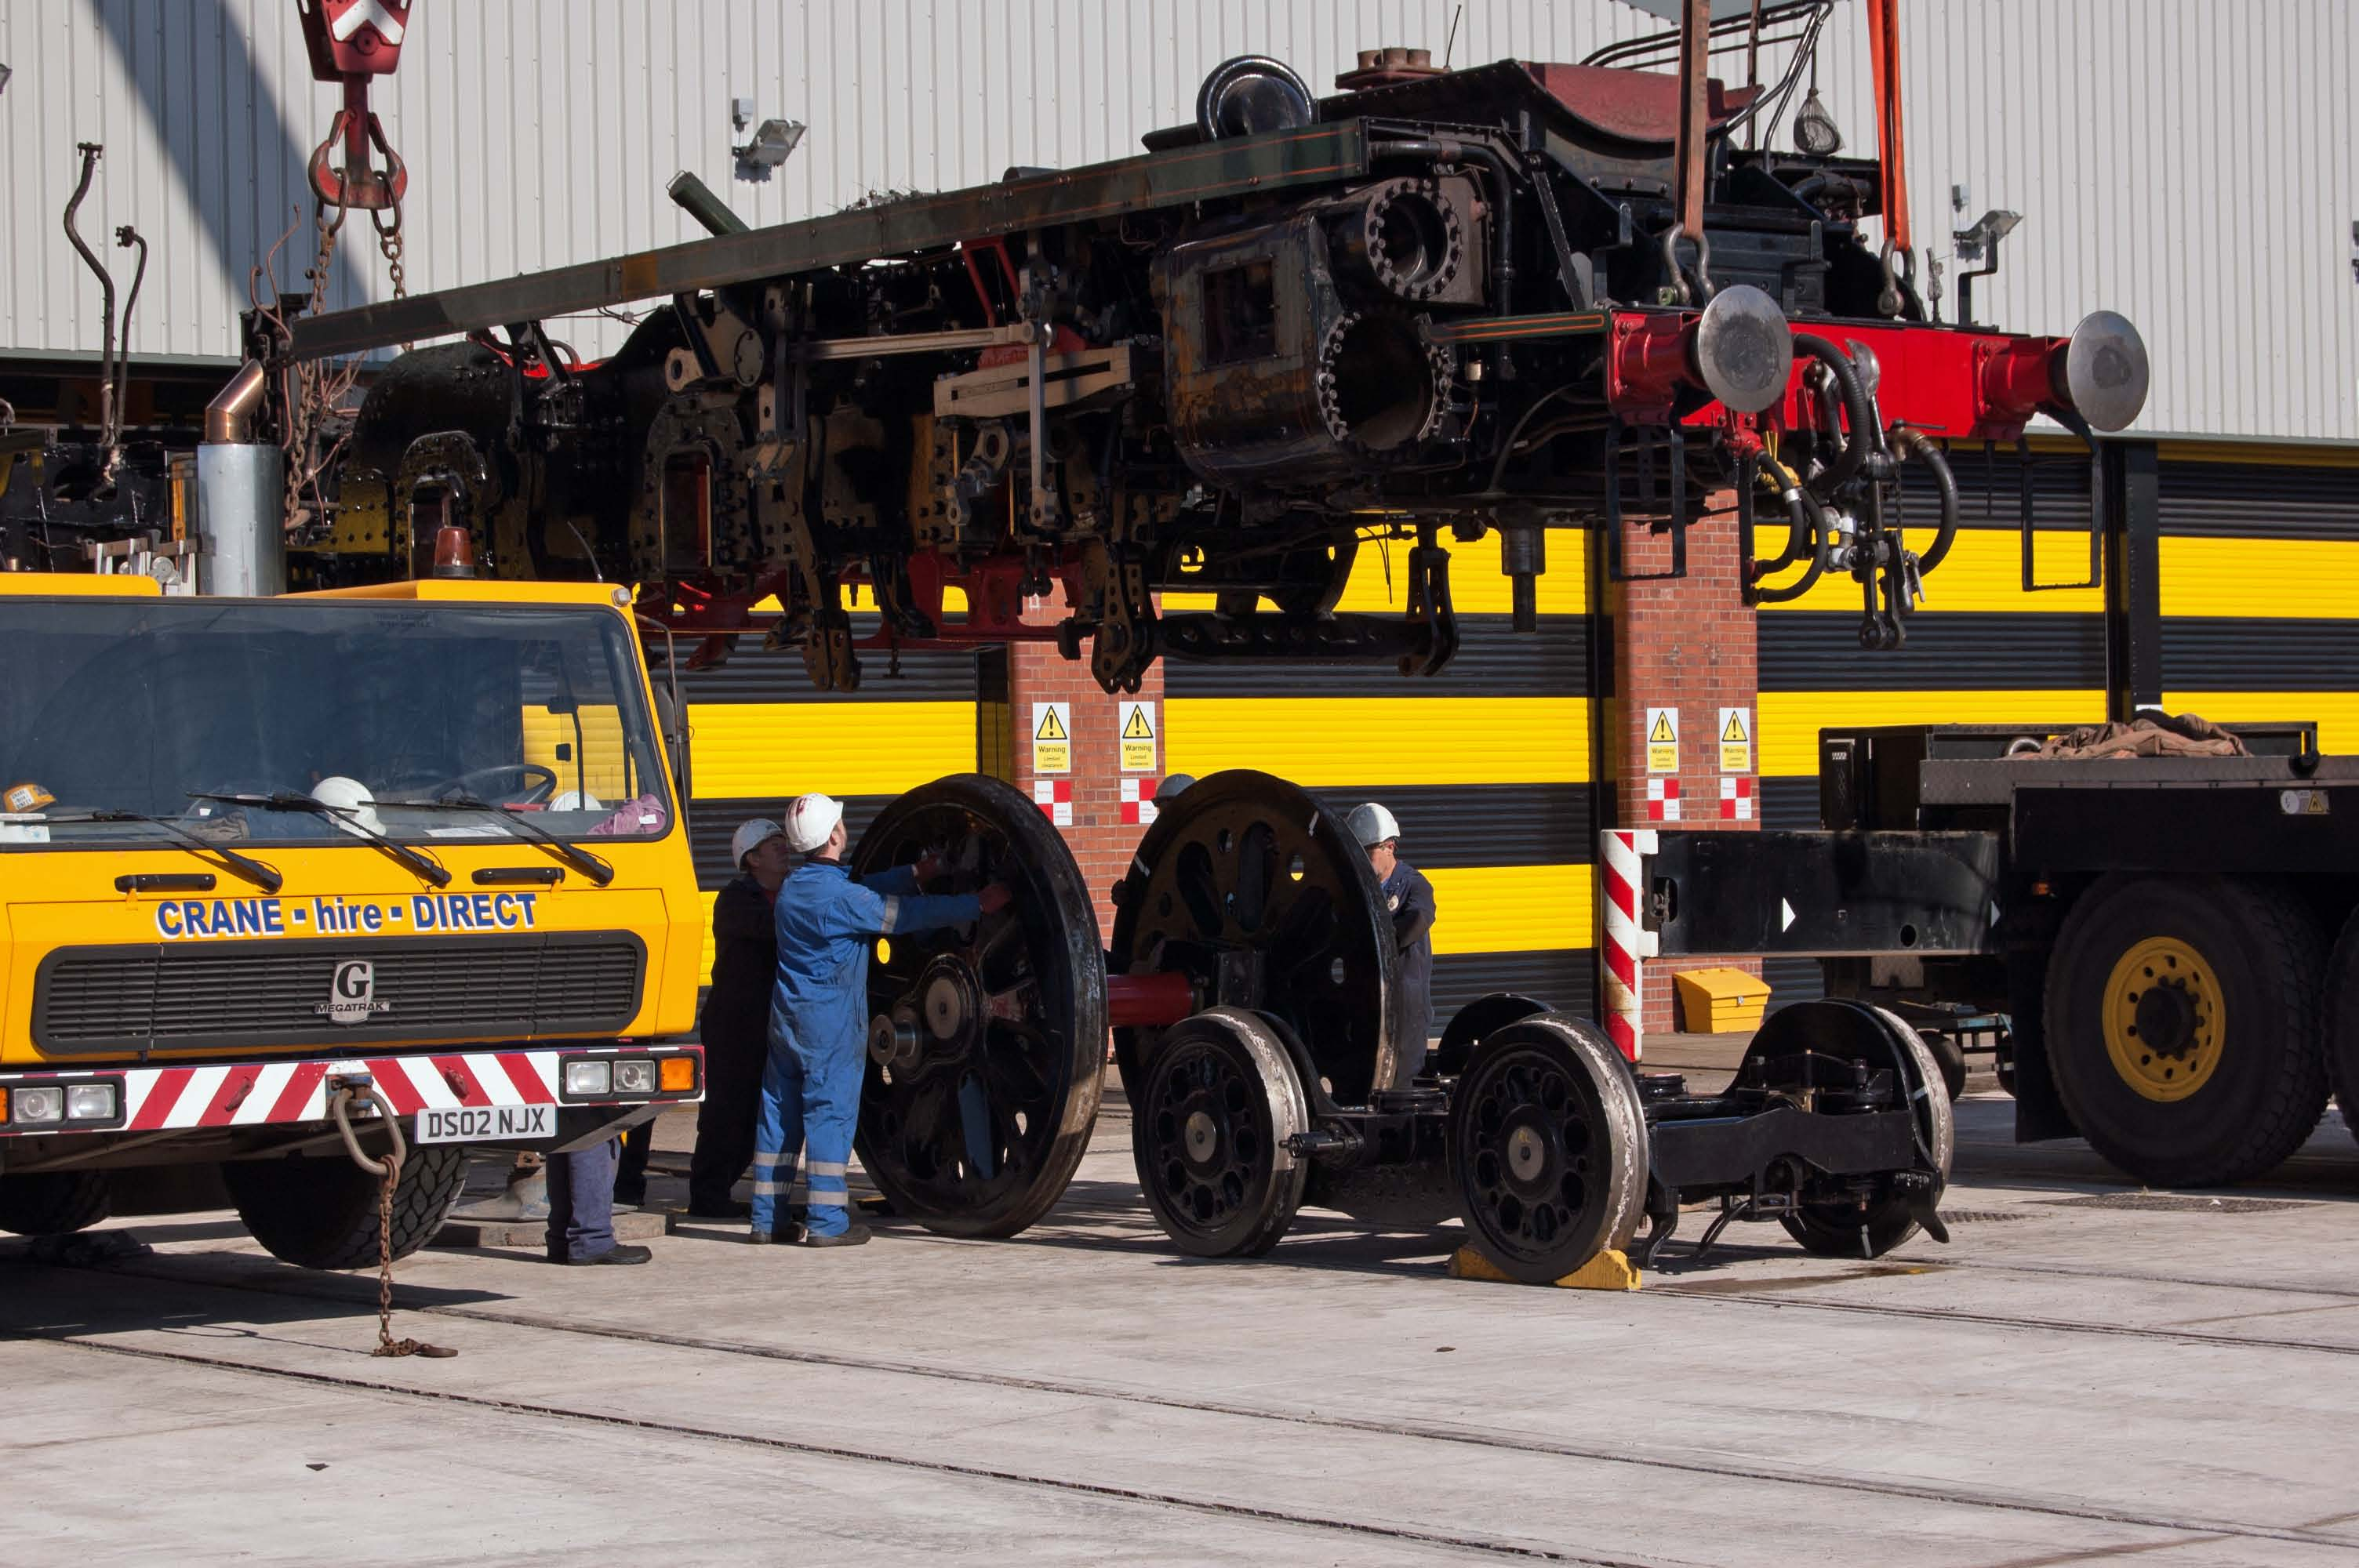 After the accommodation bogies have been removed, the front driving axle is moved in to position